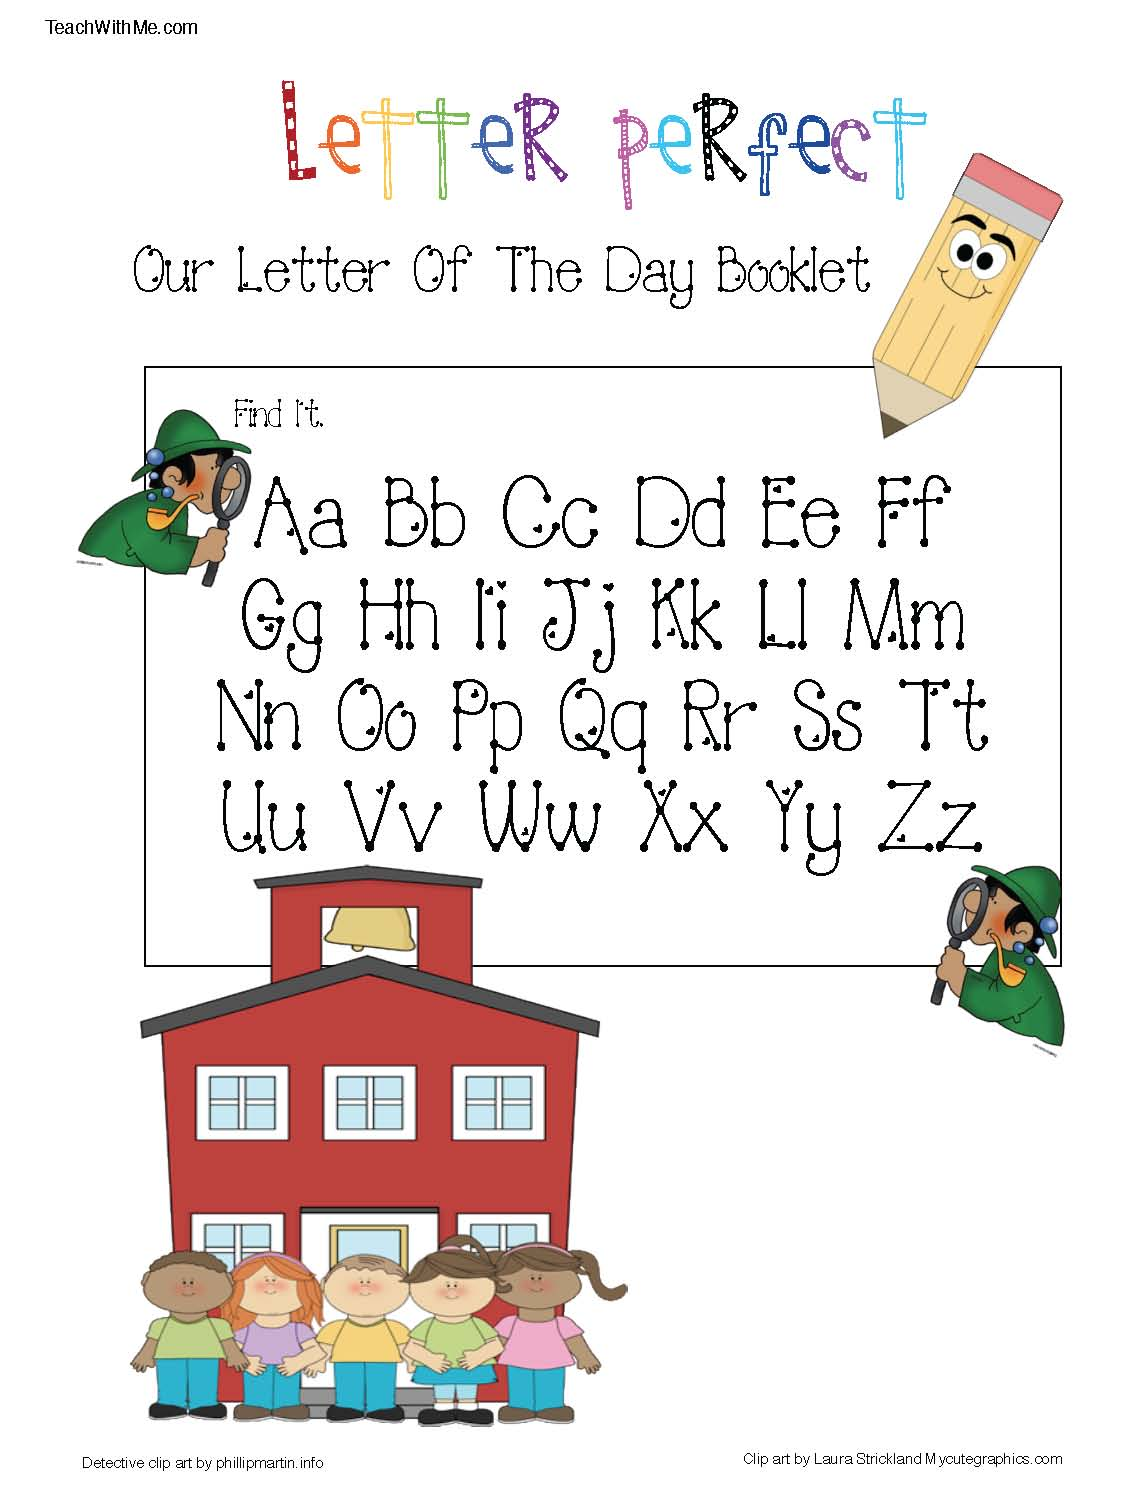 calendar activities, pirate activities, calendar lessons, letter of the day activities, letter of the day, letter of the day lessons, letter of the day worksheets, letter of the day ideas, letter of the day posters, free anchor charts, free classroom posters, alphabet activities,